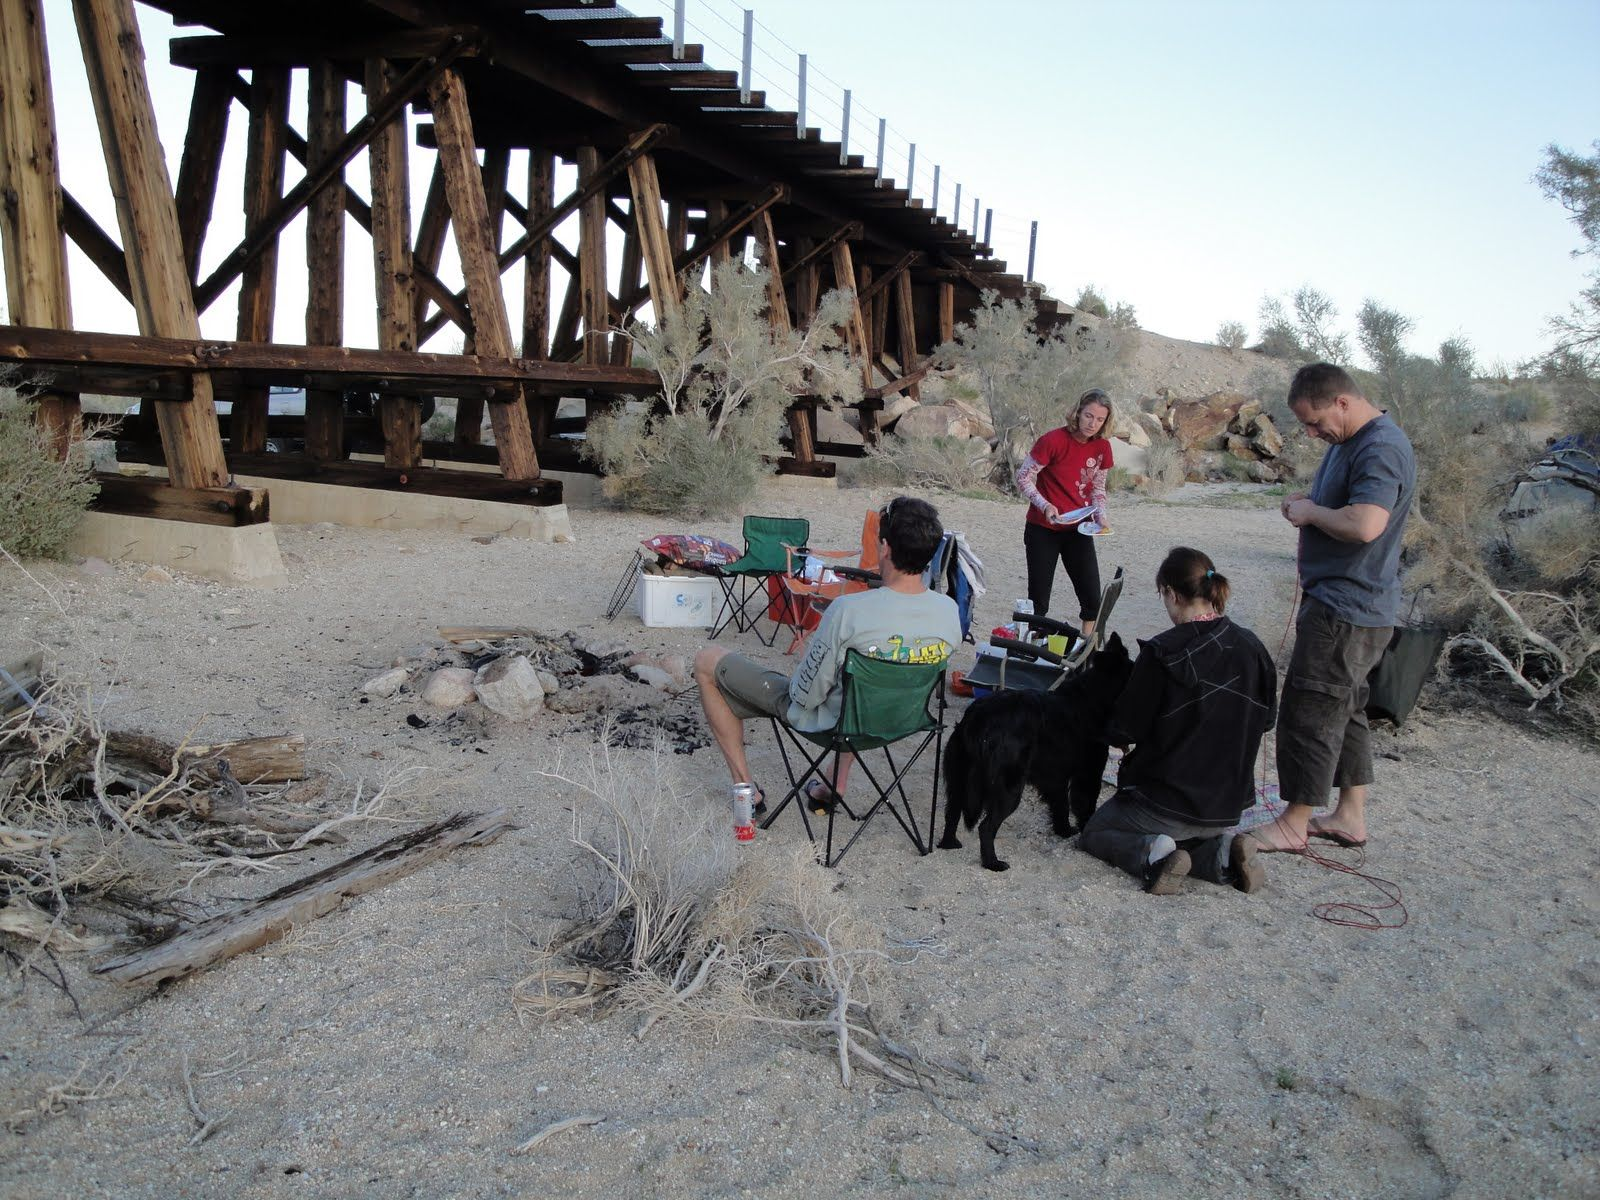 Our campsite near a small trestle at Dos Cabezas